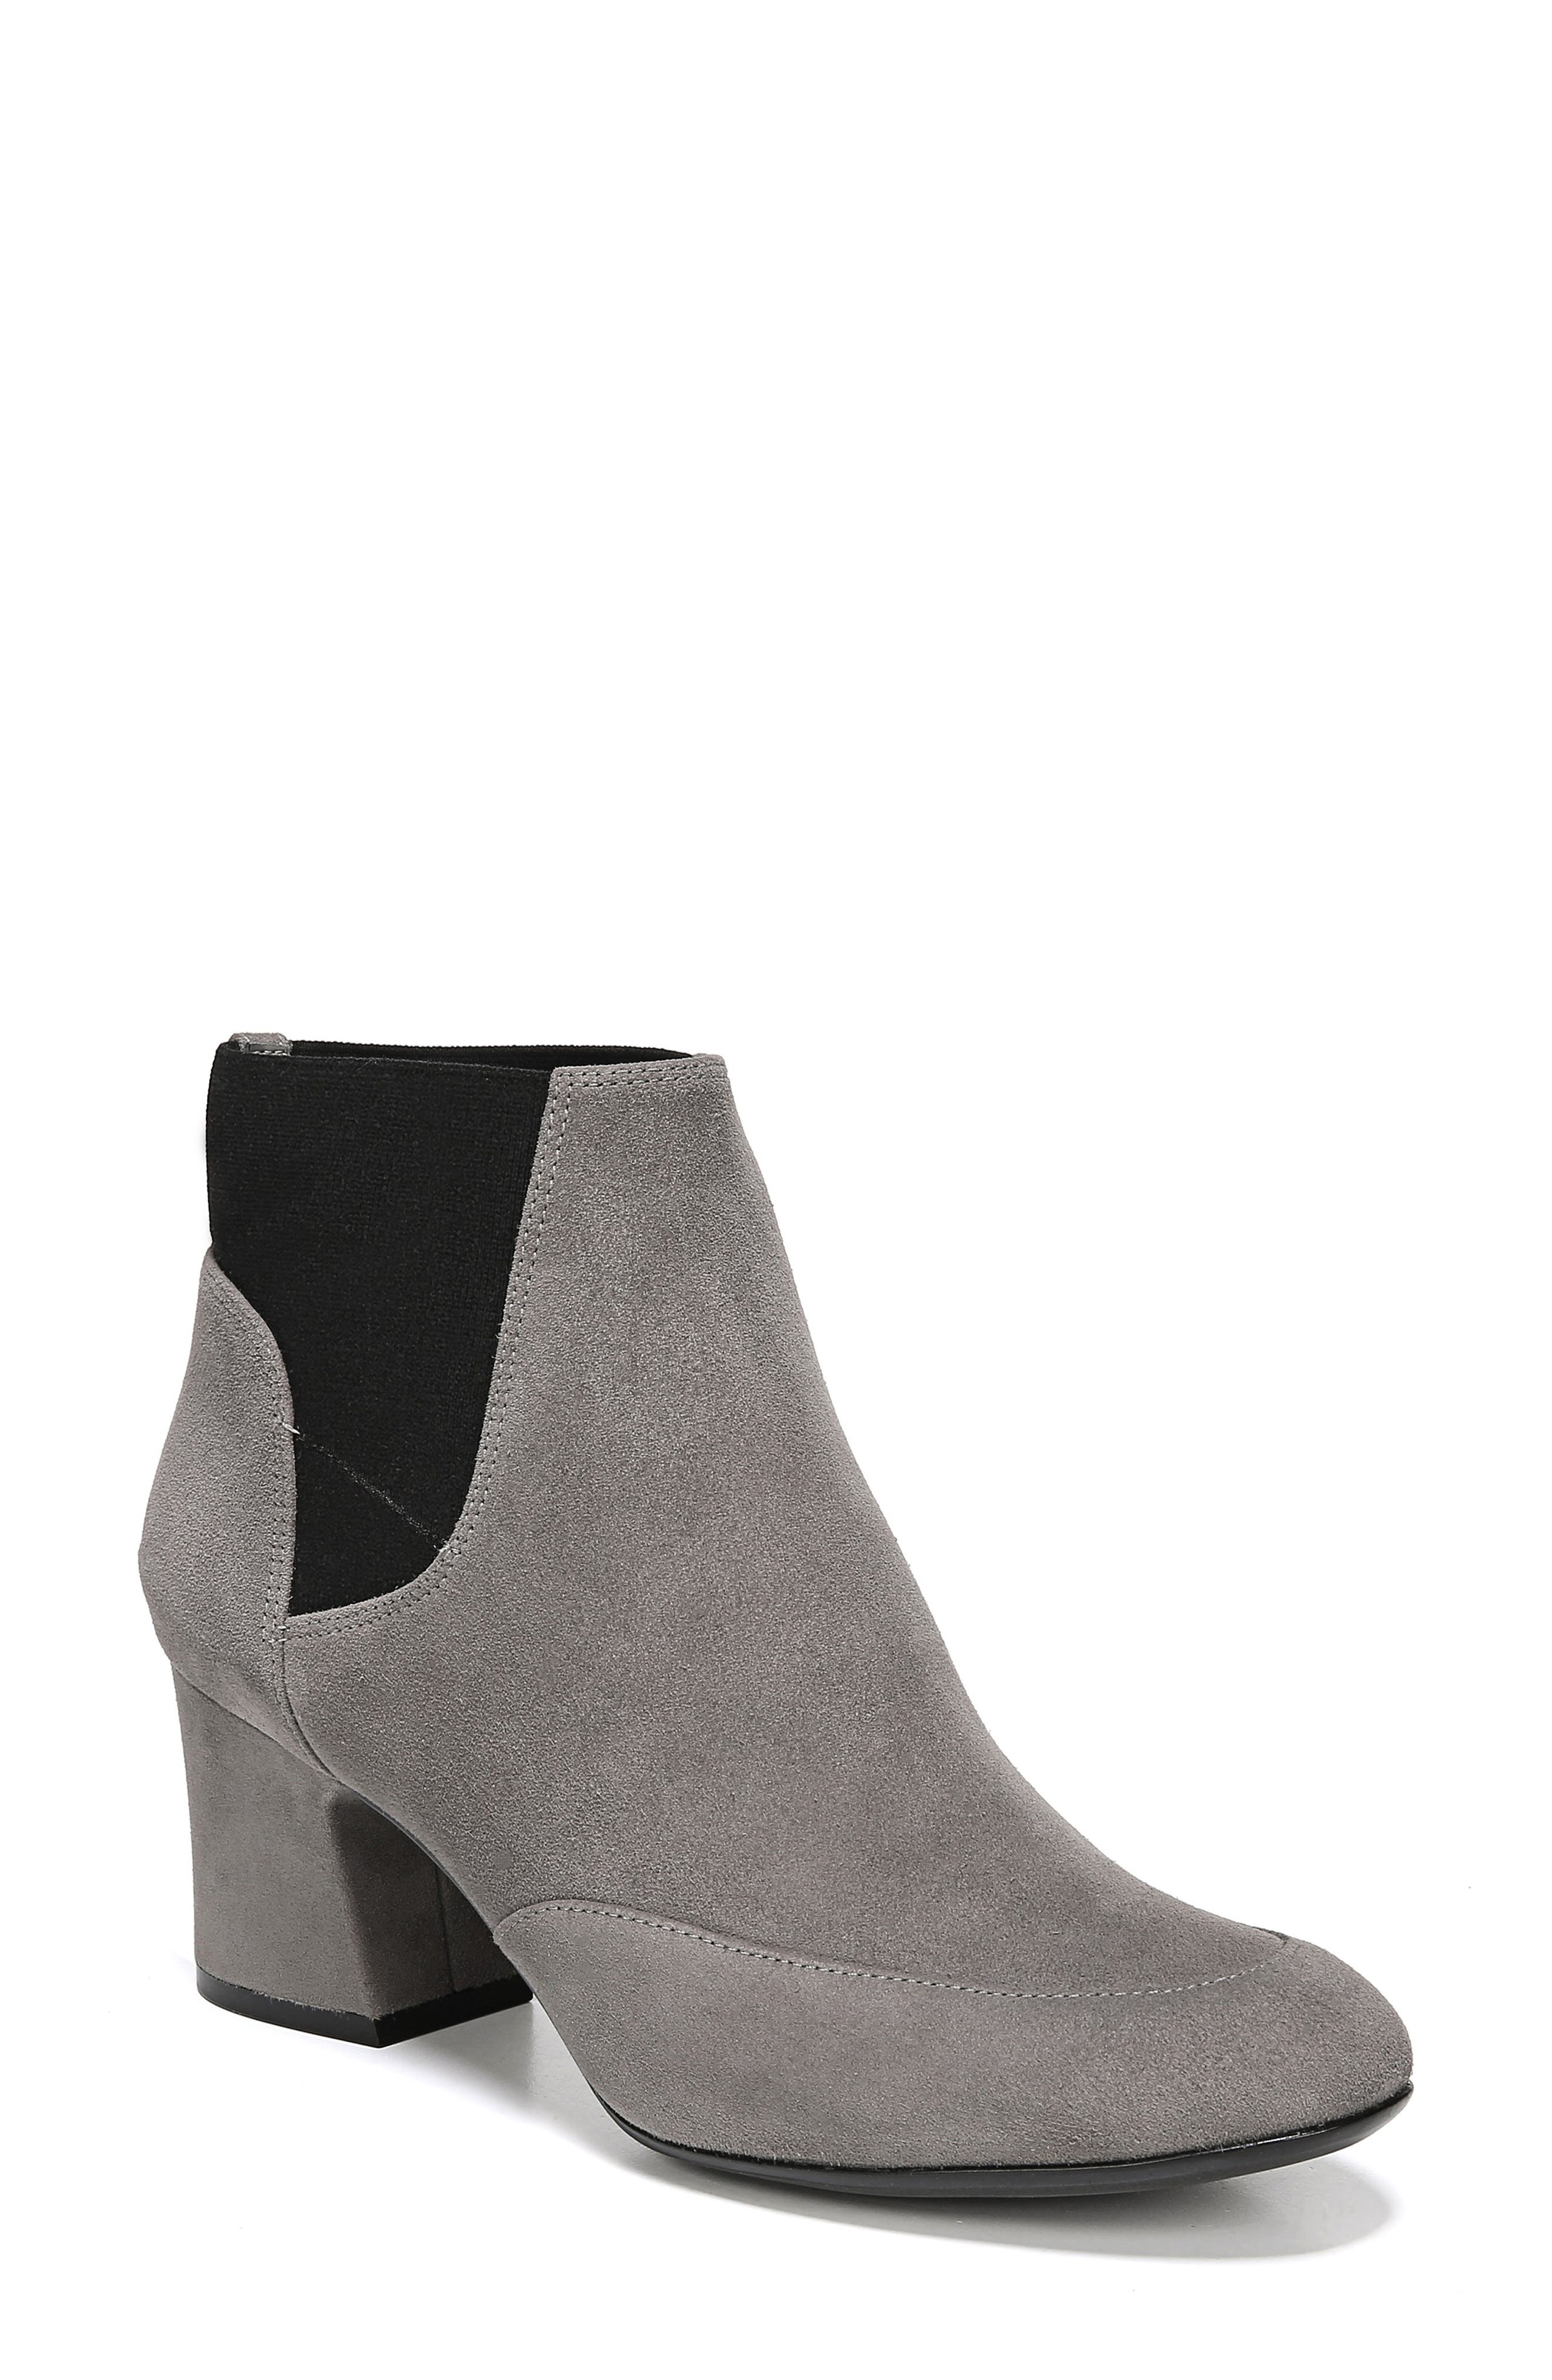 Naturalizer Danica Ankle Bootie- Grey